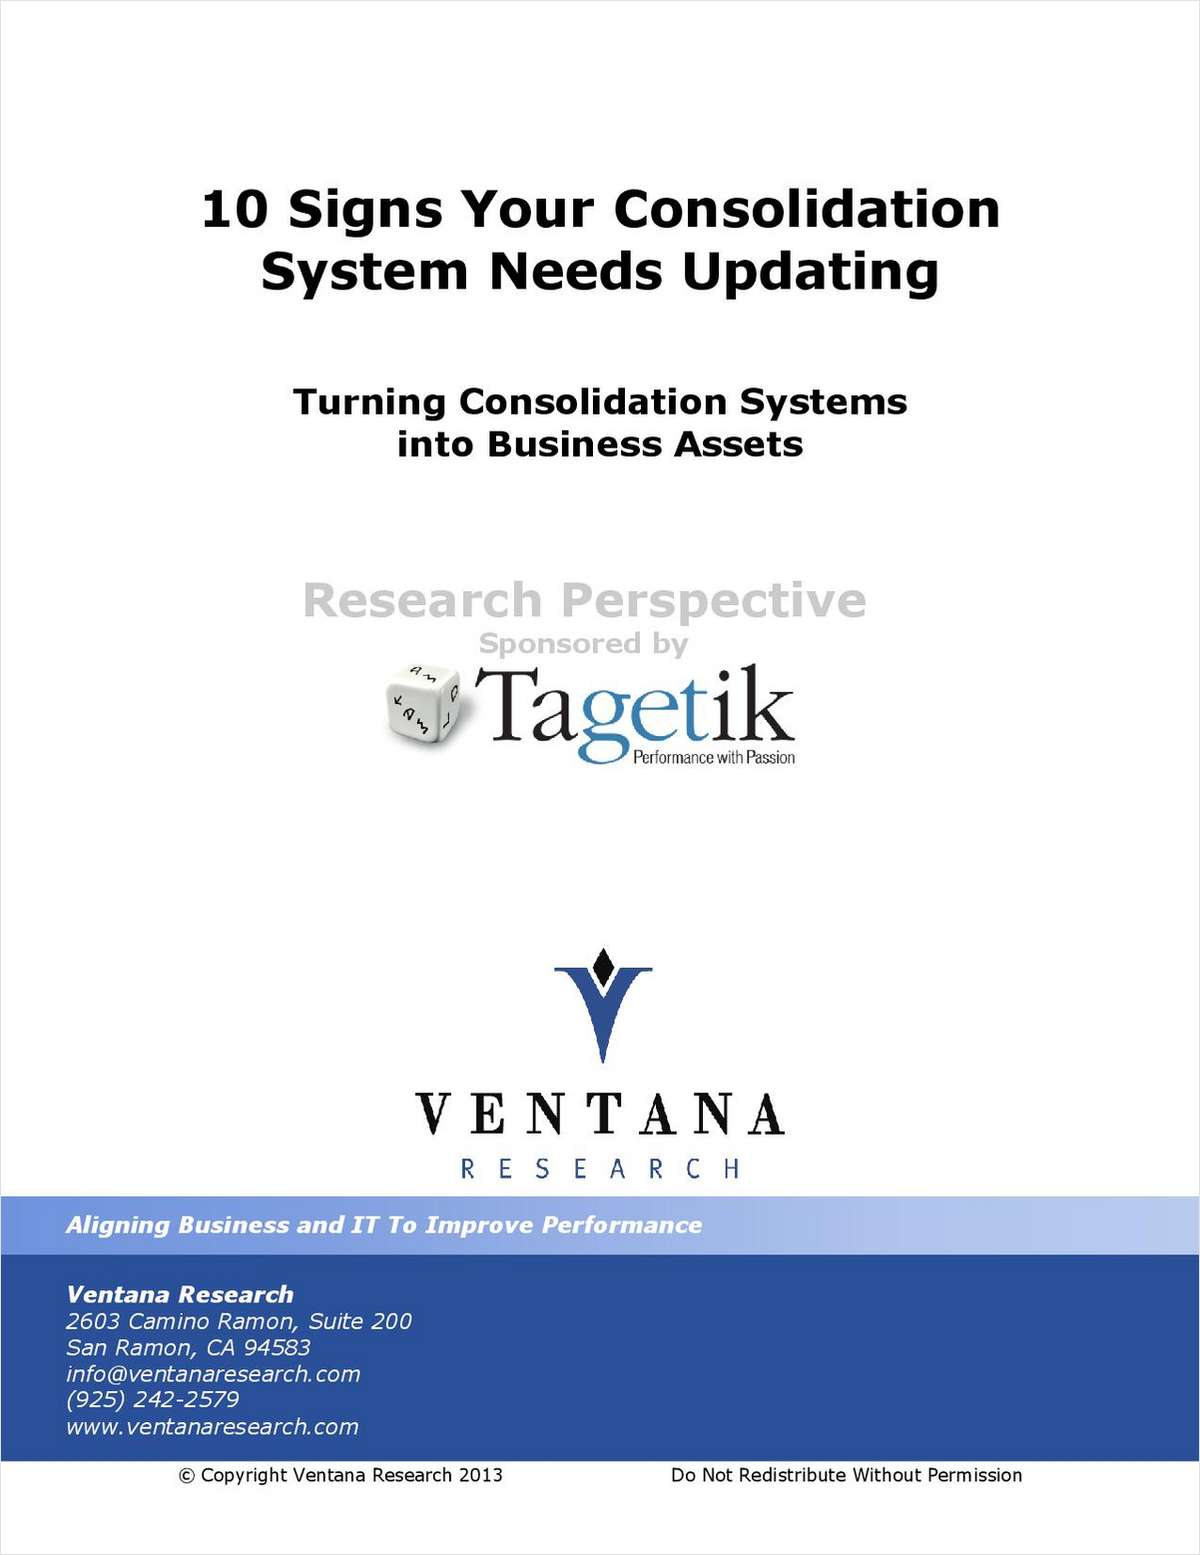 It's Time to Update Your Consolidation System: 10 Warning Signs